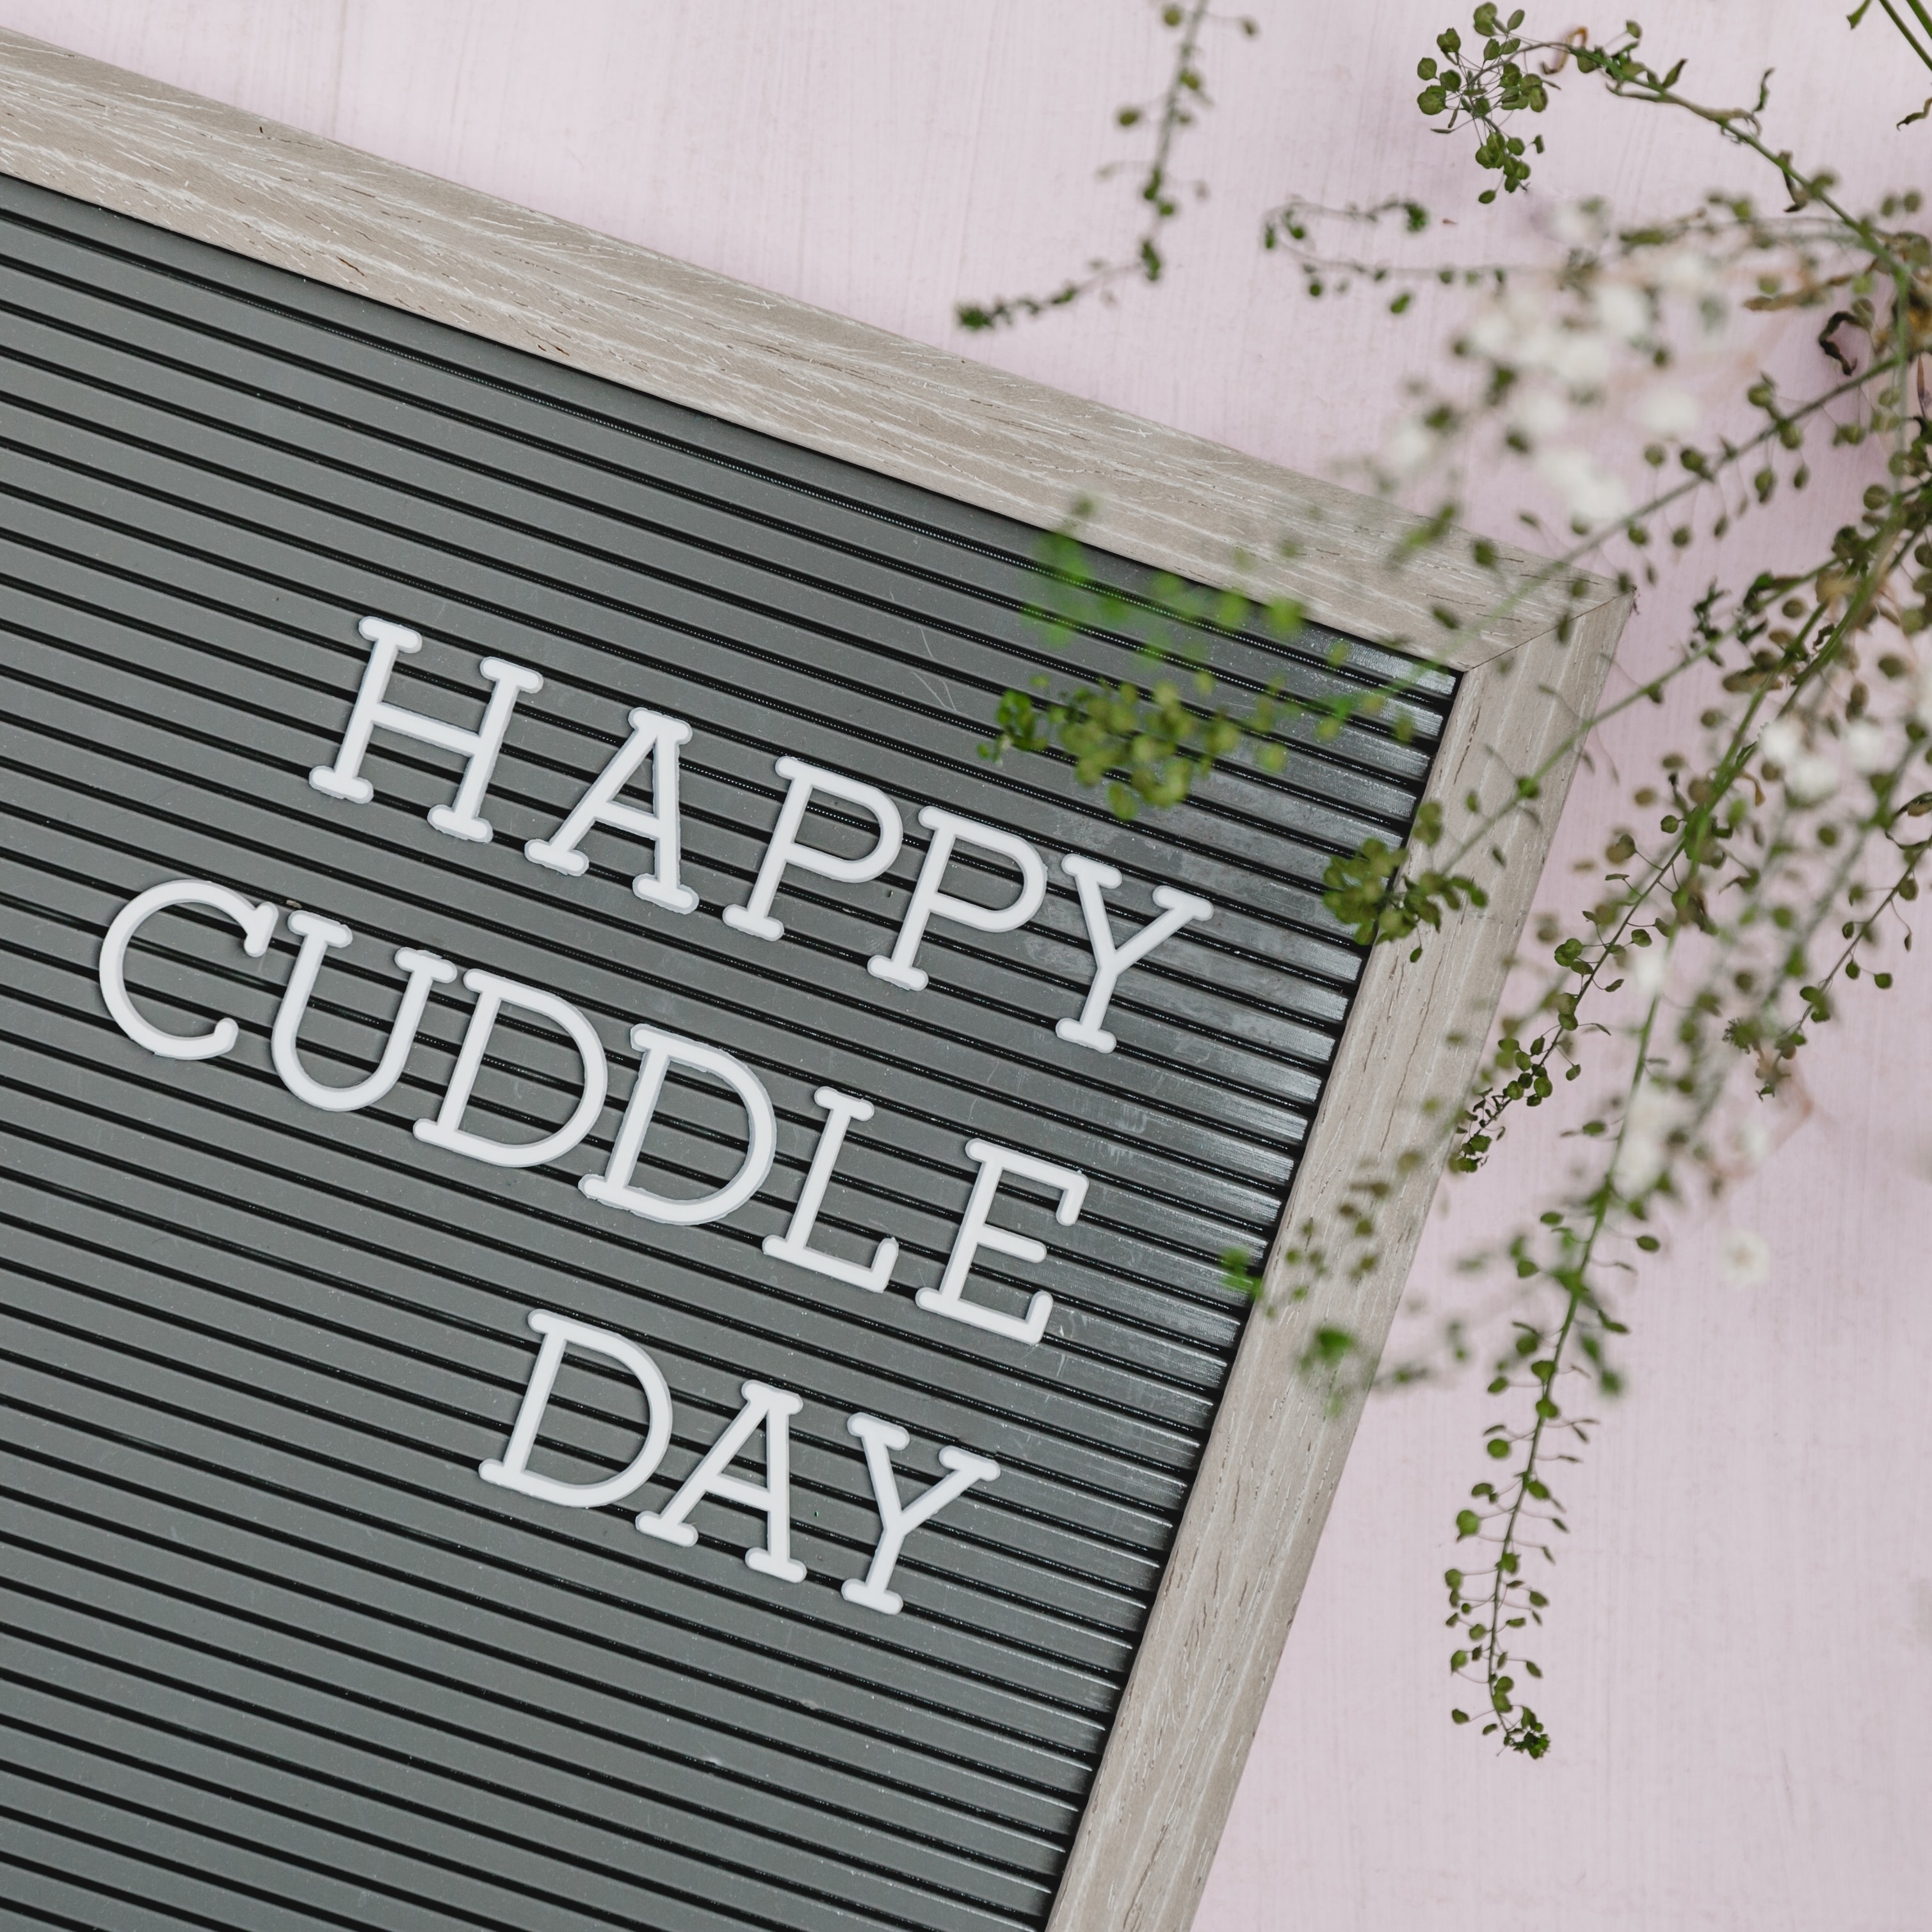 happy cuddle day text